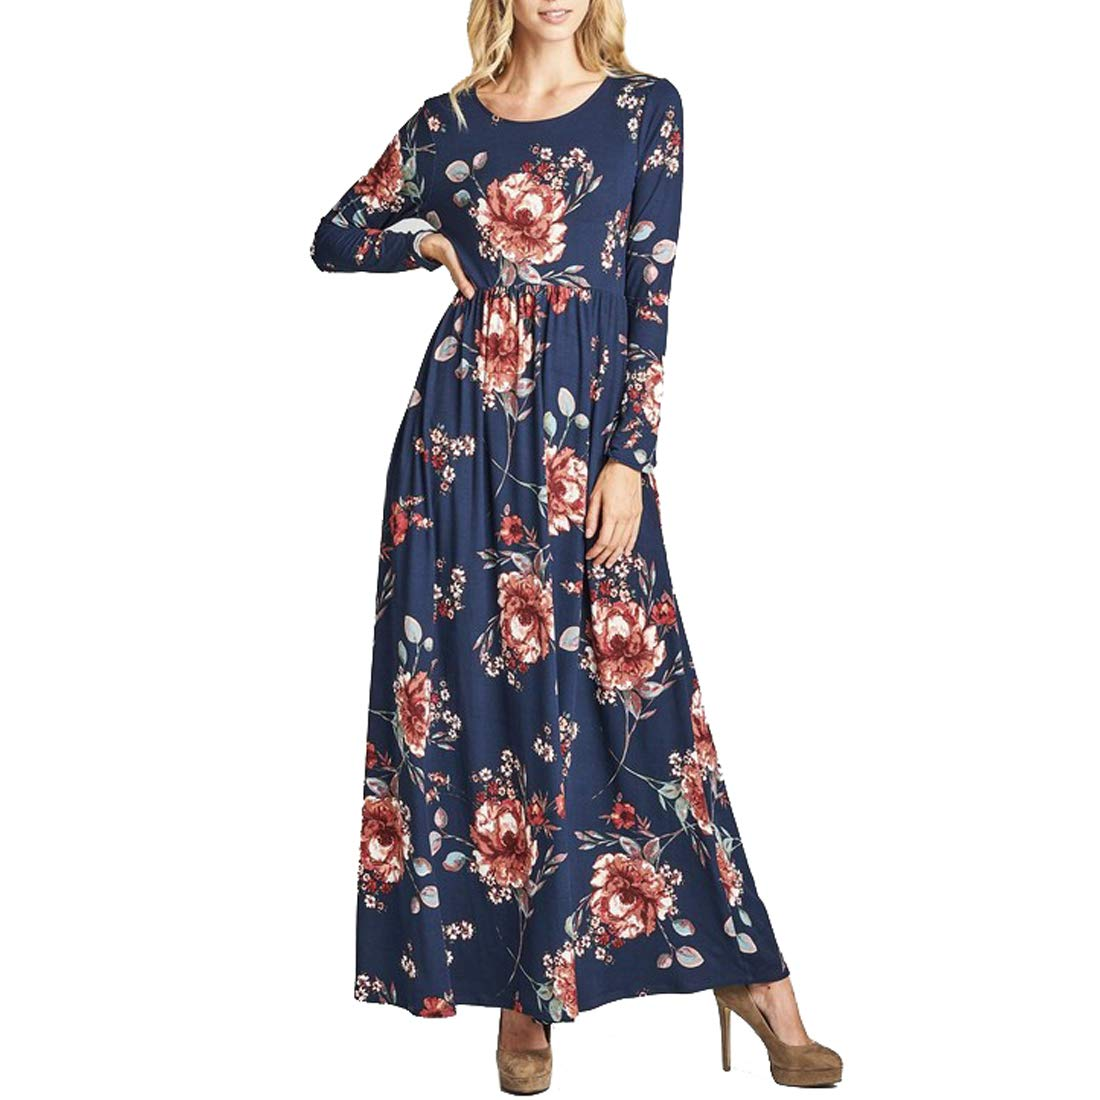 bluee JCR LIFESTYLE Women's Long Sleeve Loose Casual Floral Print Maxi Dress with Pockets